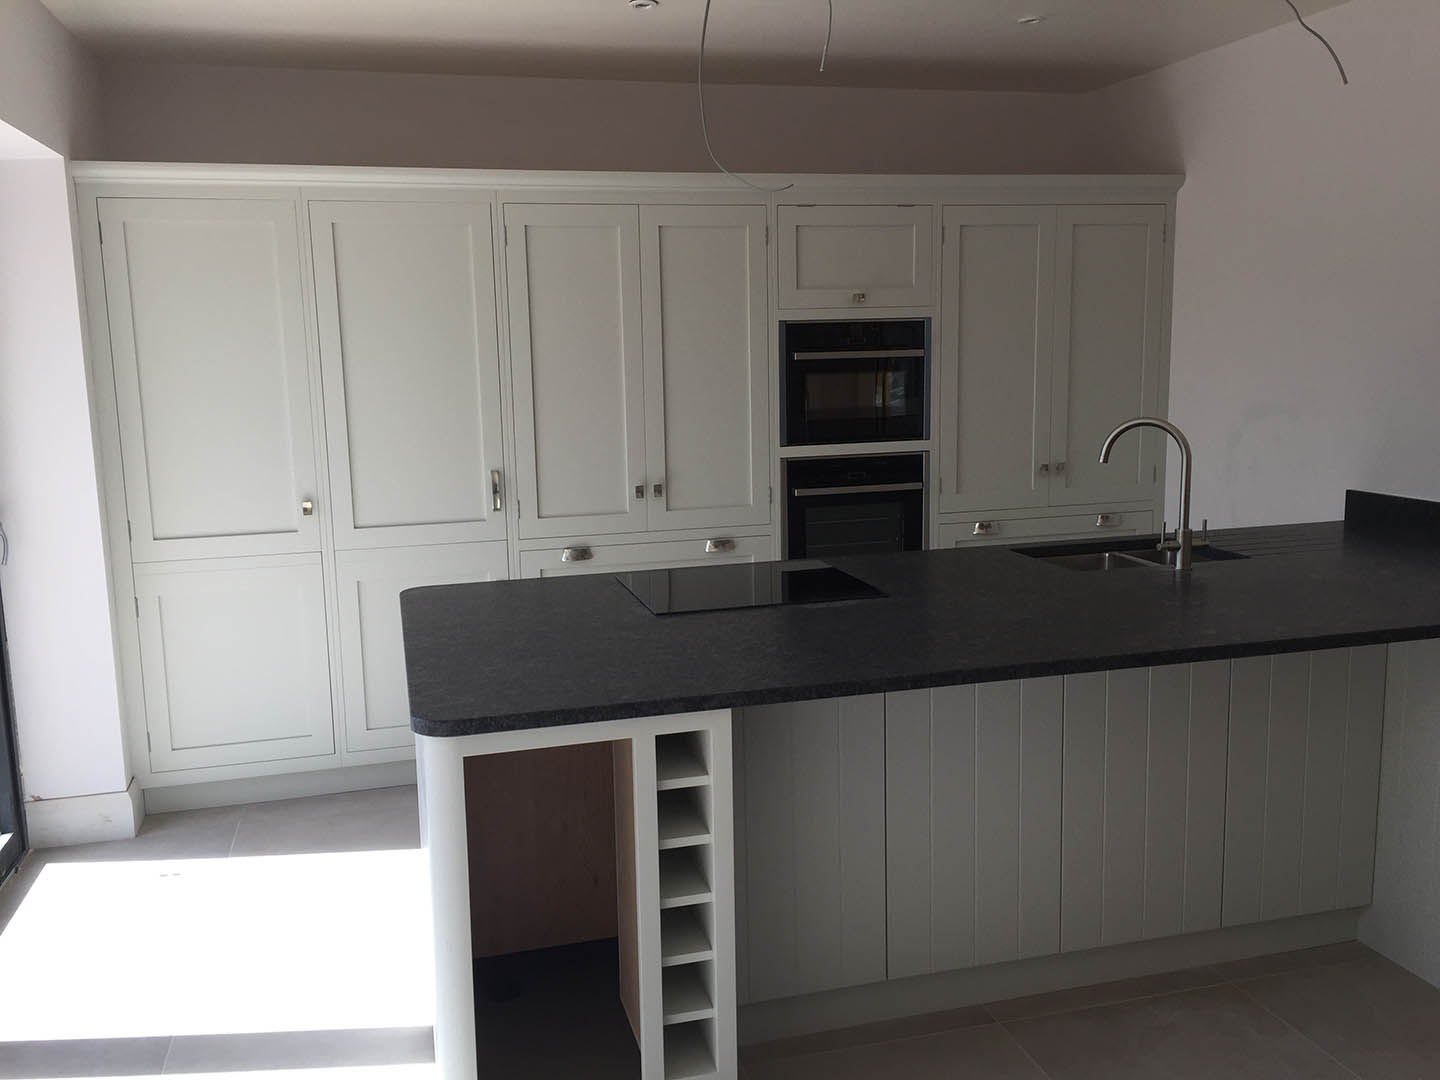 A wide view of a granite topped kitchen